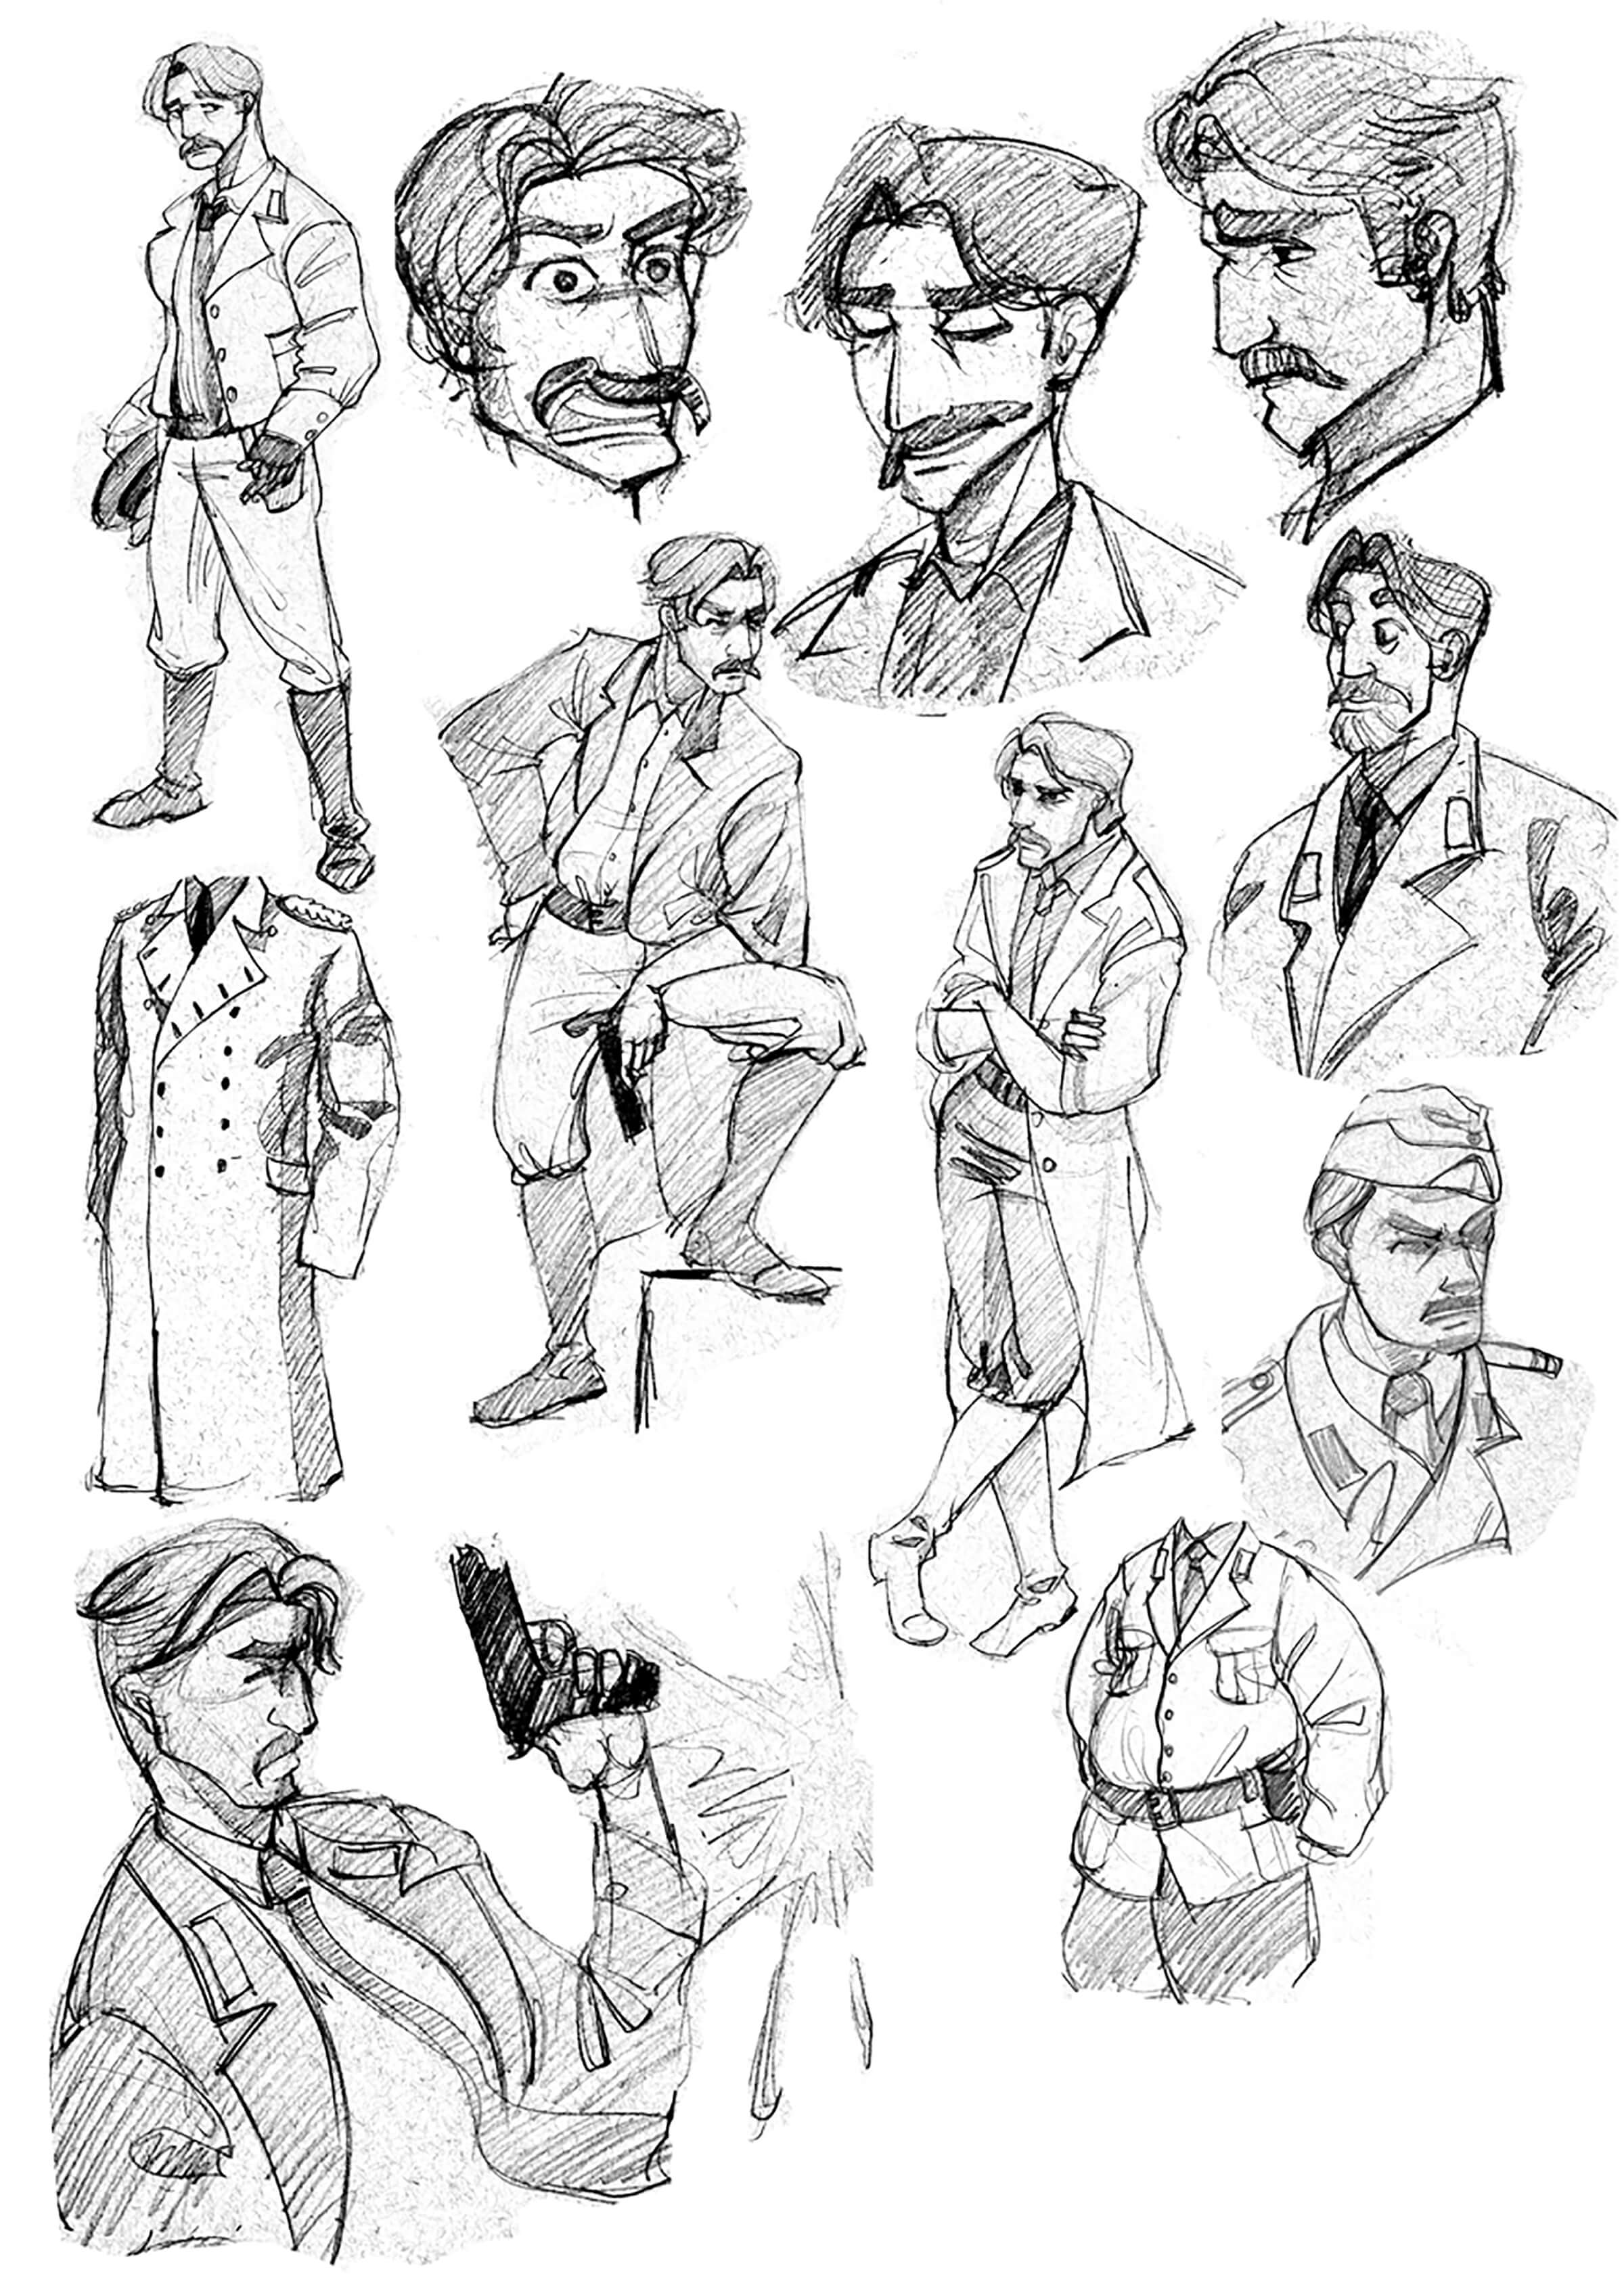 black and white drawings of a mustachioed man in a long overcoat in various poses